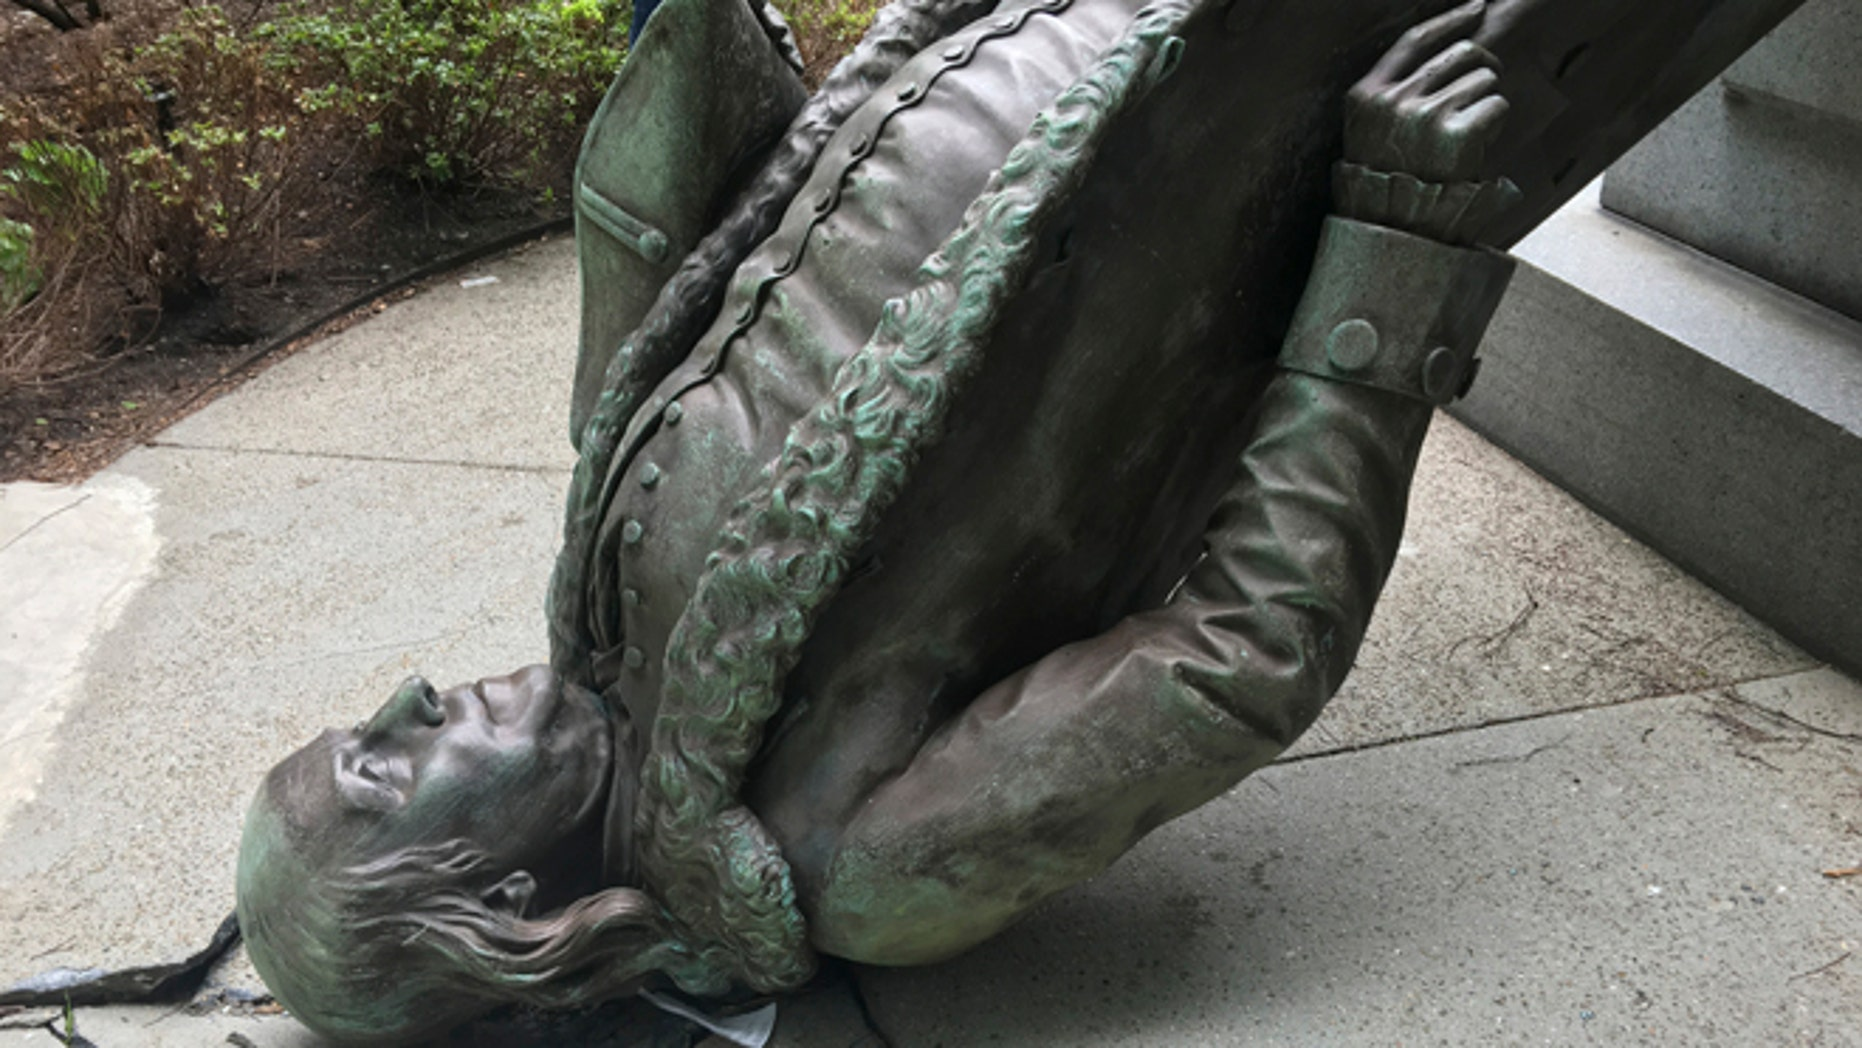 In this photo released by the City of Boston Mayor's office, a statue of Benjamin Franklin lies on the concrete outside where it landed when knocked off its pedestal outside Old City Hall